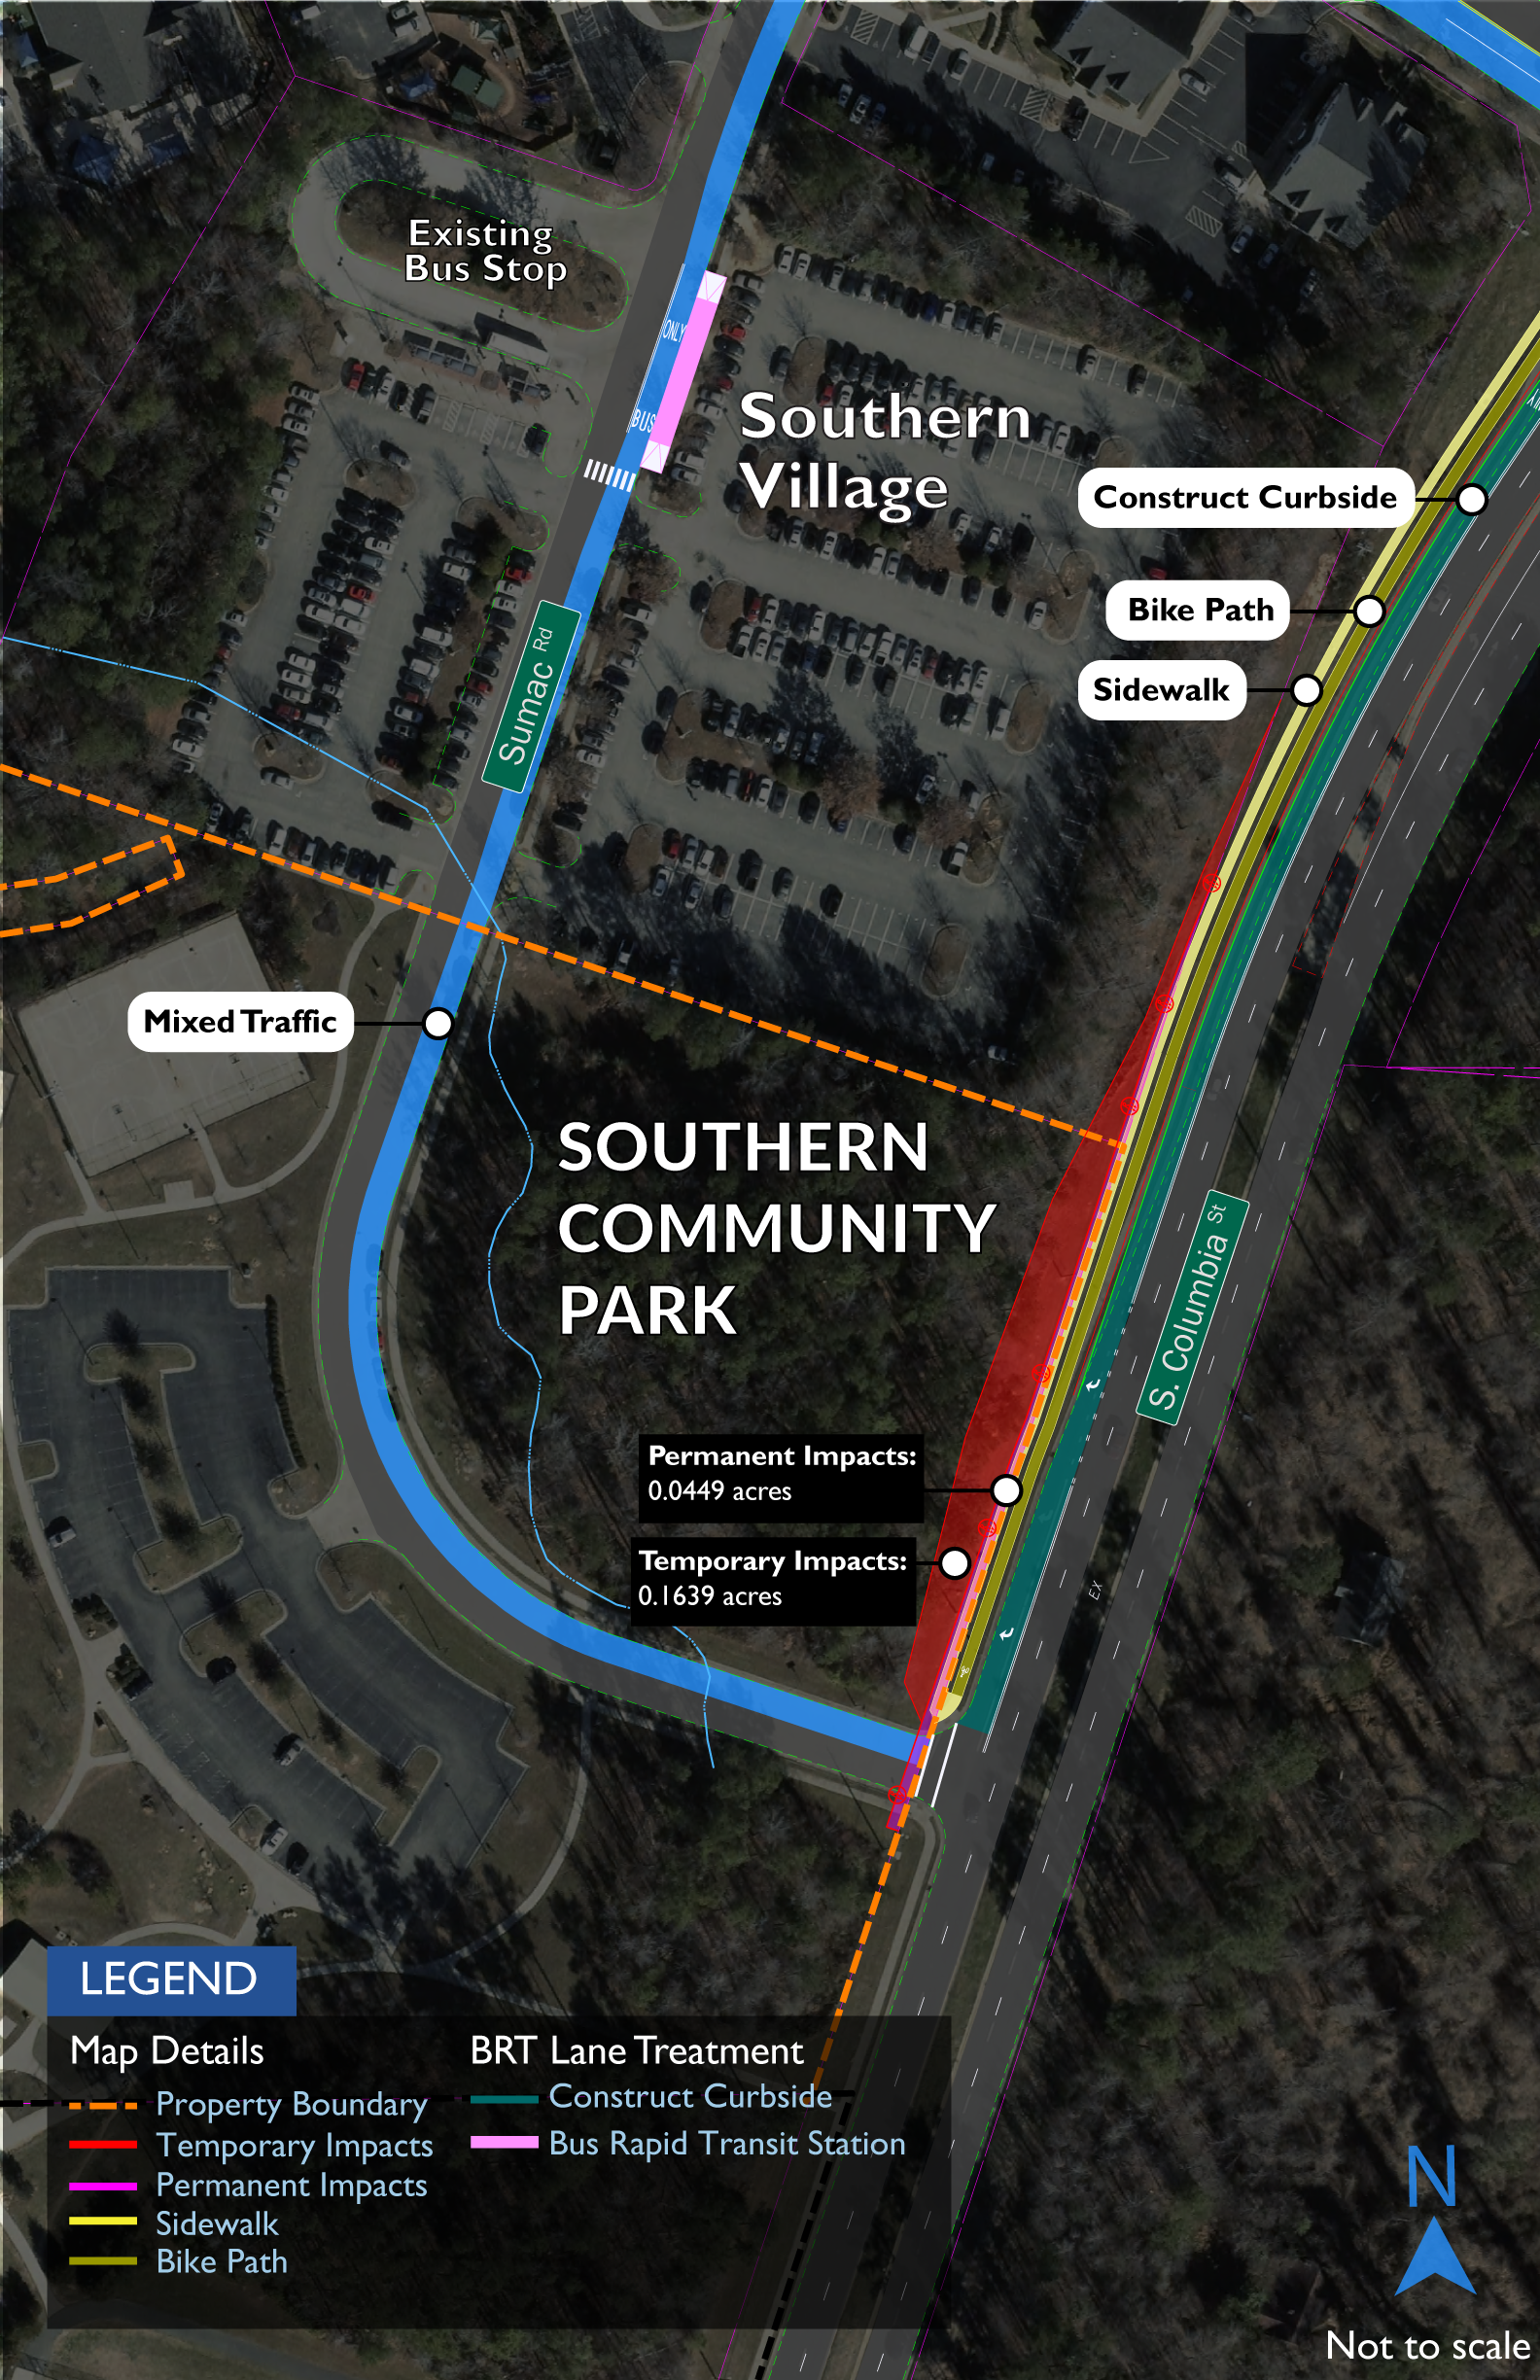 Map showing impacts to Southern Community Park. A minor partial acquisition of 0.04 acres would be required in the northeastern corner of the park, along South Columbia Street just north of Sumac Road, to accommodate construction of the BRT guideway and new bicycle and pedestrian facilities. A wider strip of about 0.16 acres would be temporarily occupied during construction.